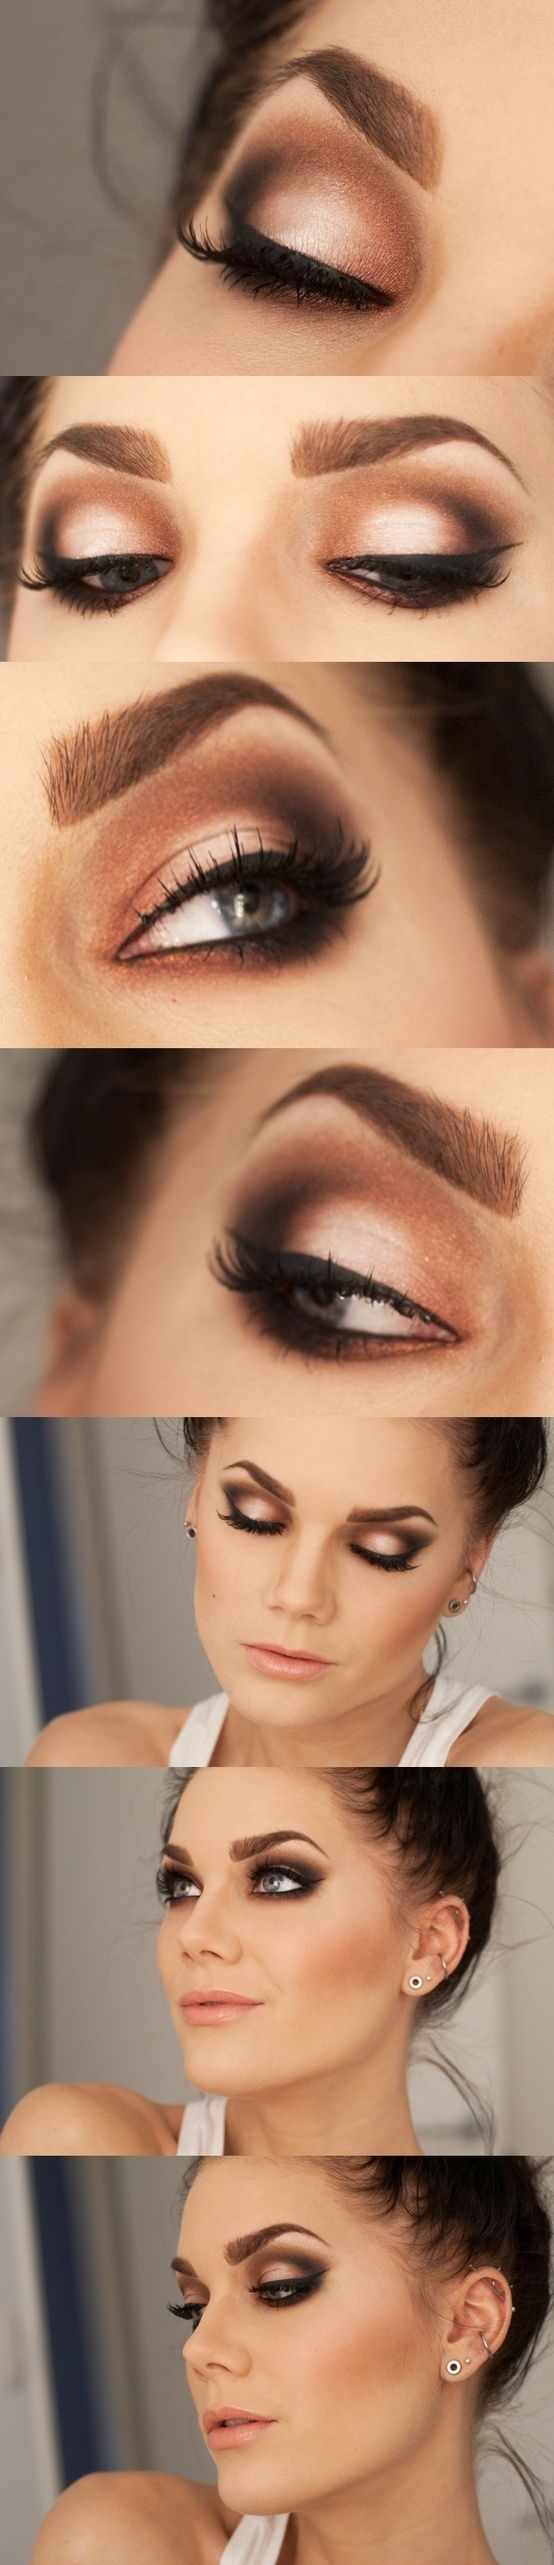 maquillaje ocre